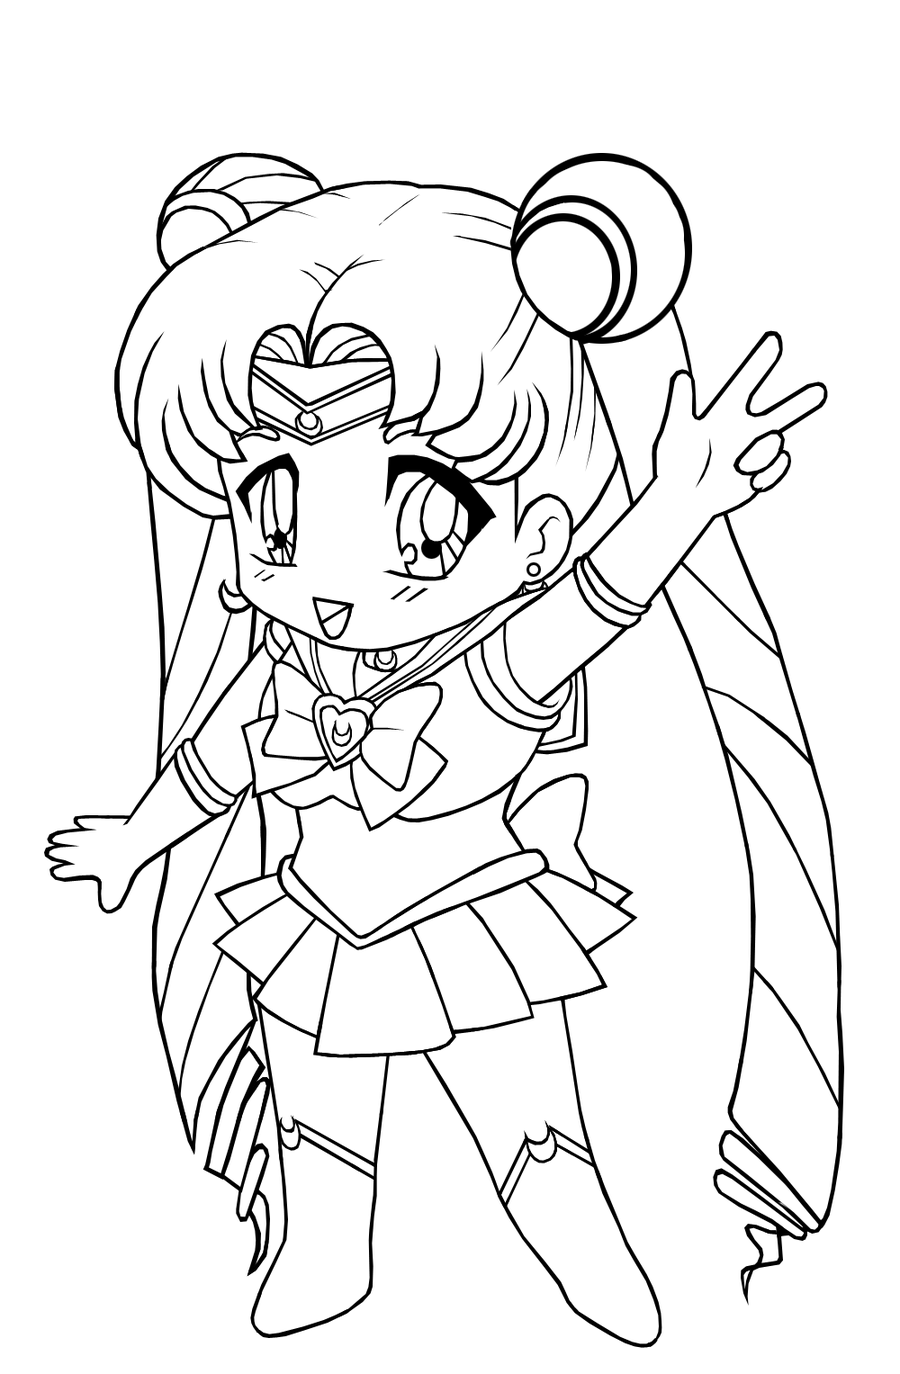 kids coloring sheets cute coloring pages best coloring pages for kids sheets coloring kids